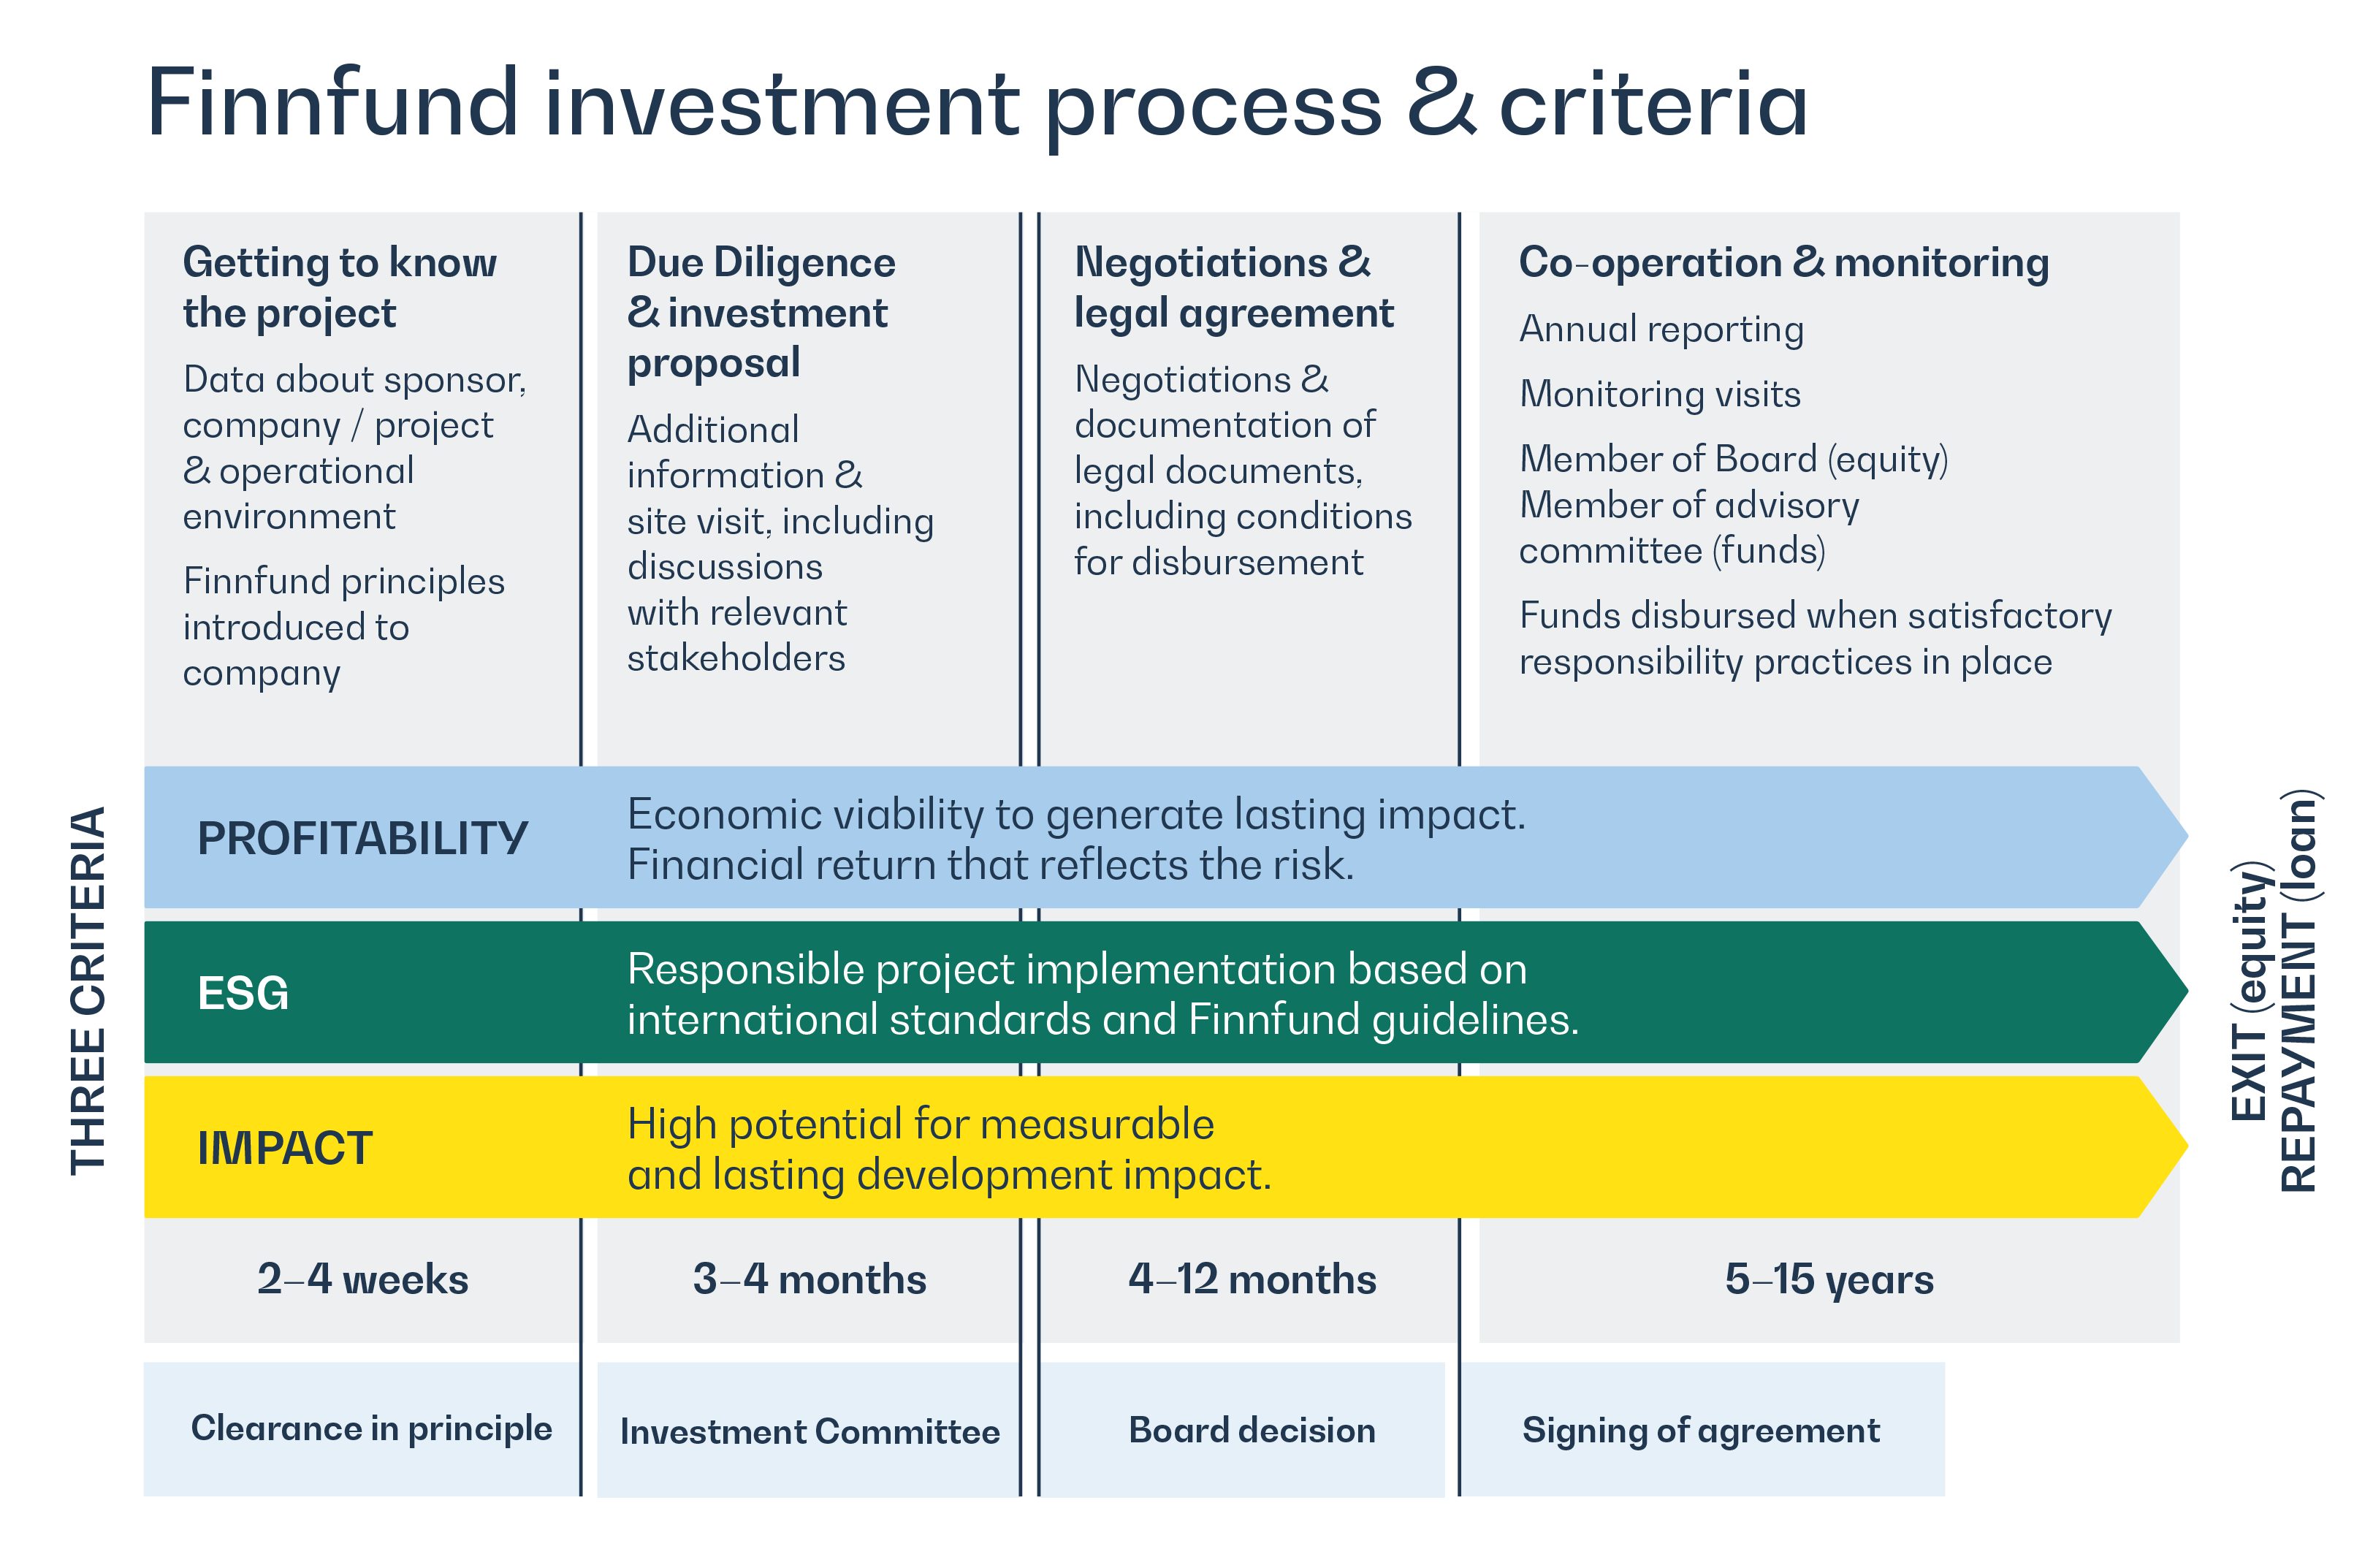 Finnfund investment process